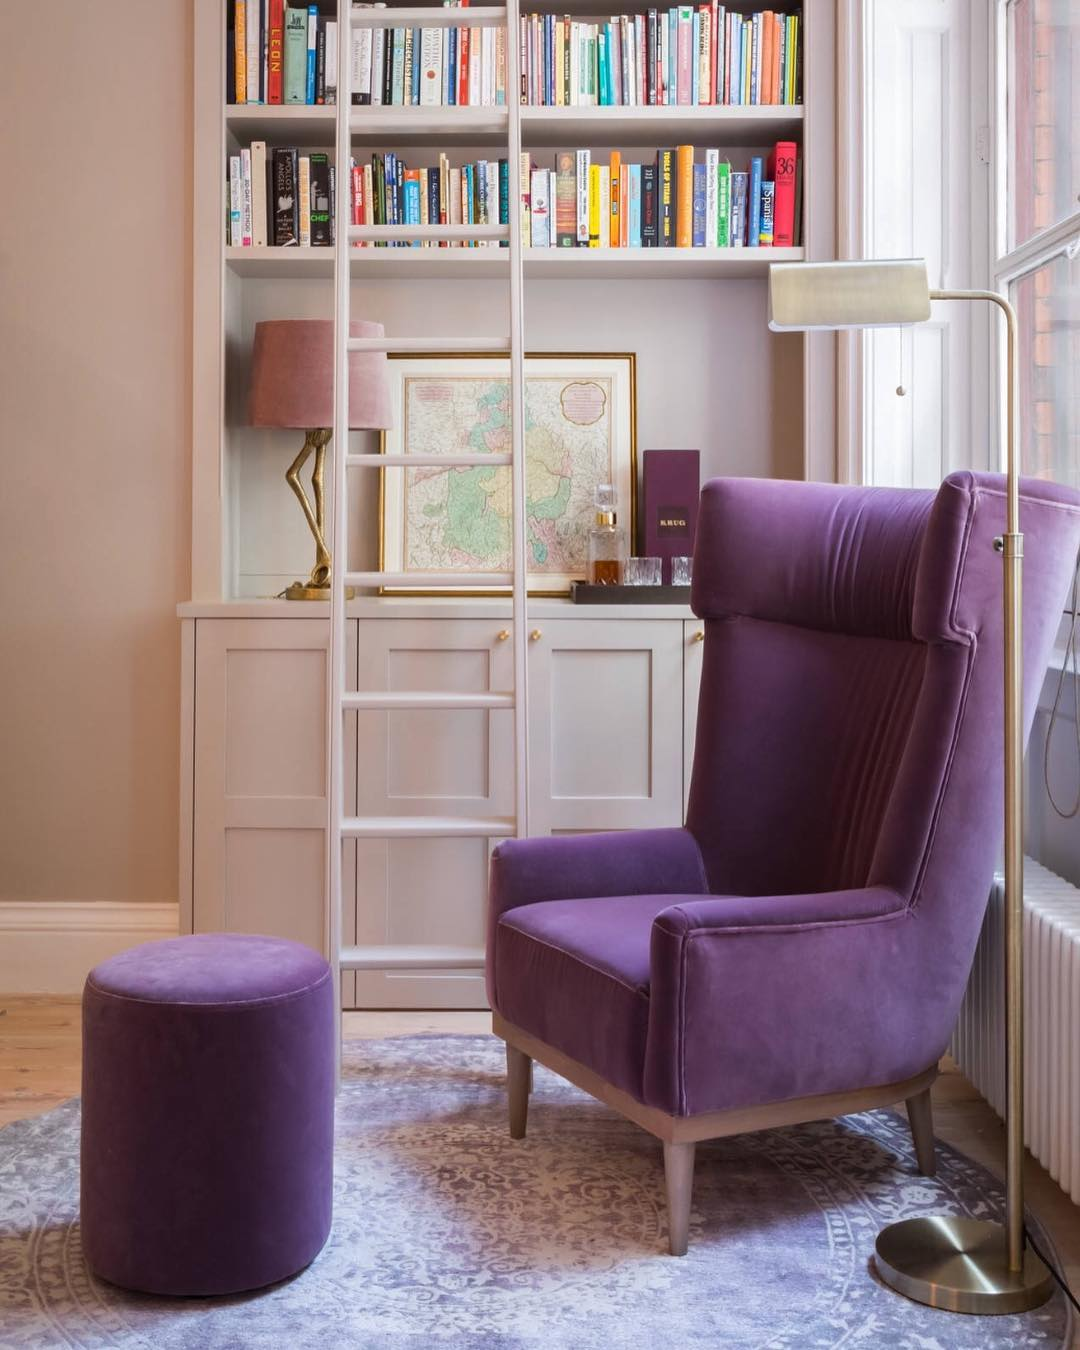 Decoration Samples with Lilac Armchairs 2020 (25)